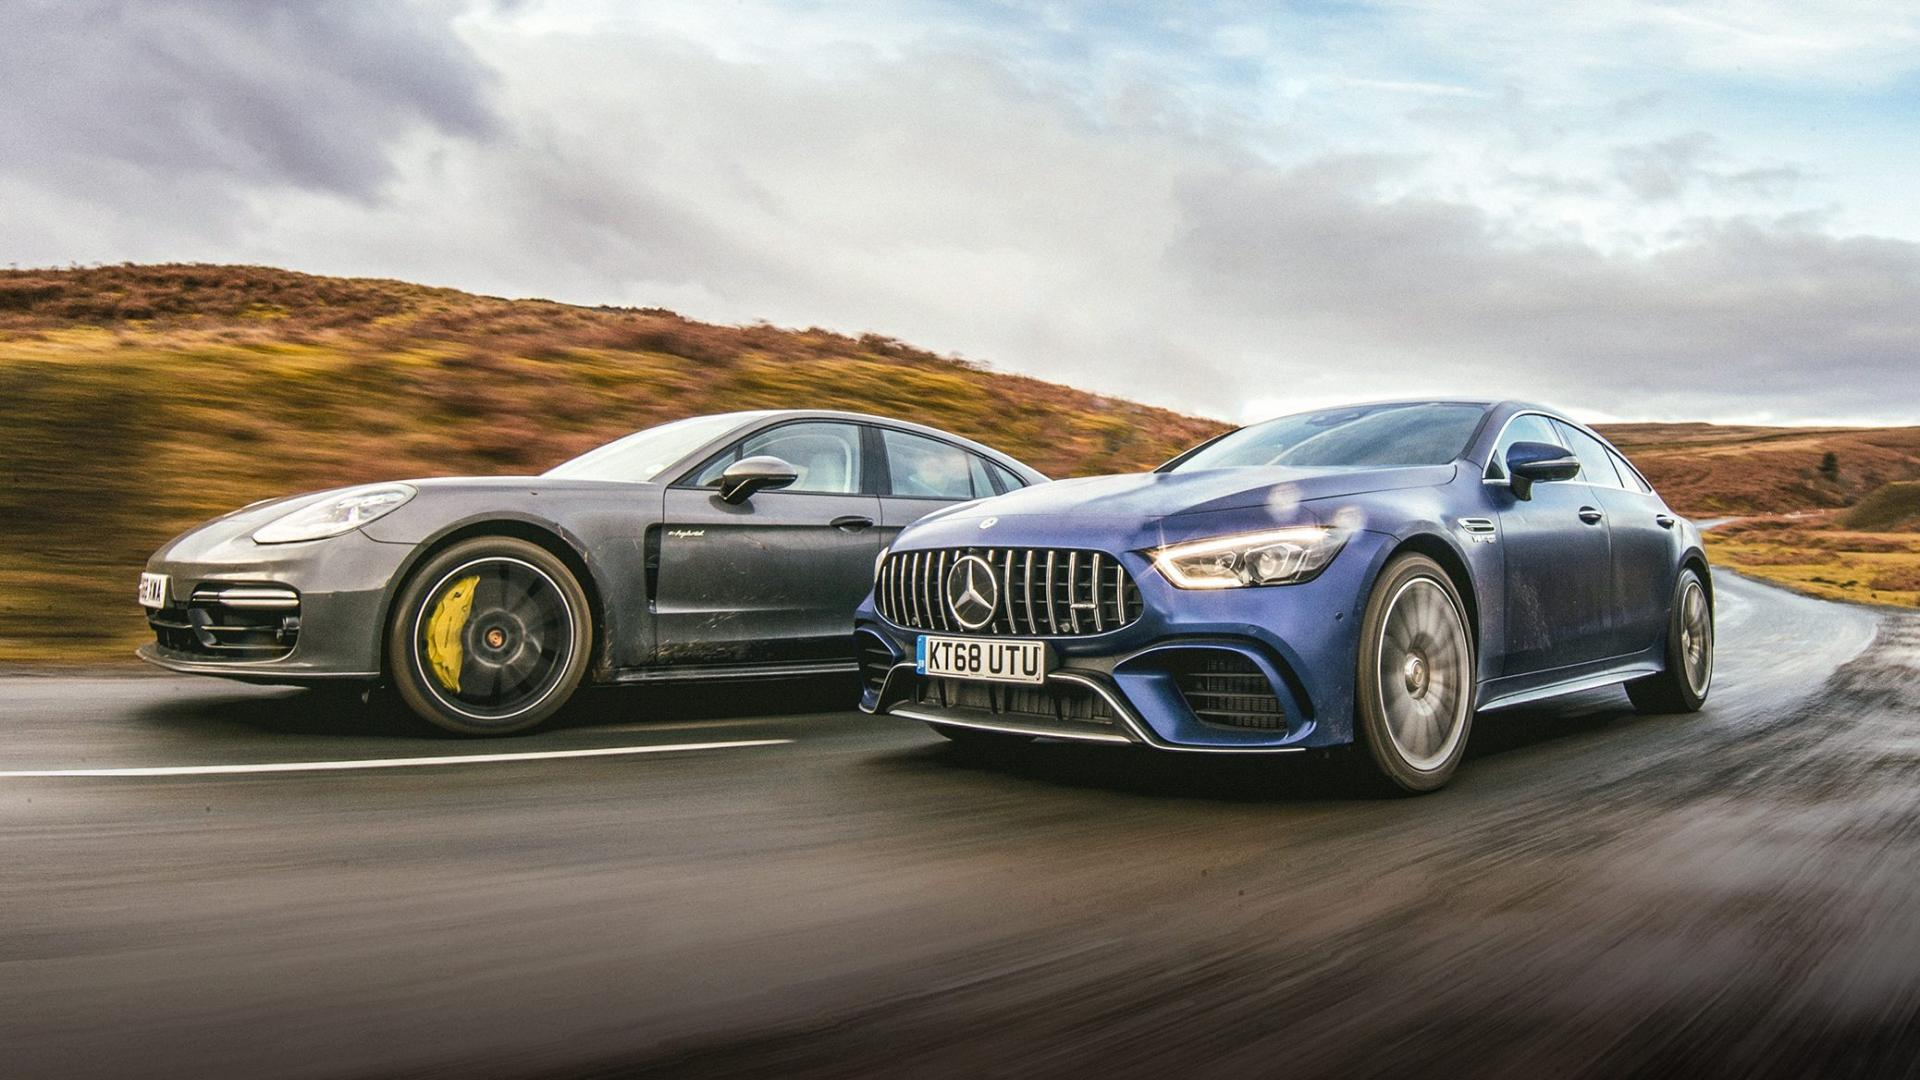 Mercedes-AMG GT 63 S 4Matic+ 4-Door Coupé vs Porsche Panamera Turbo S E-Hybrid